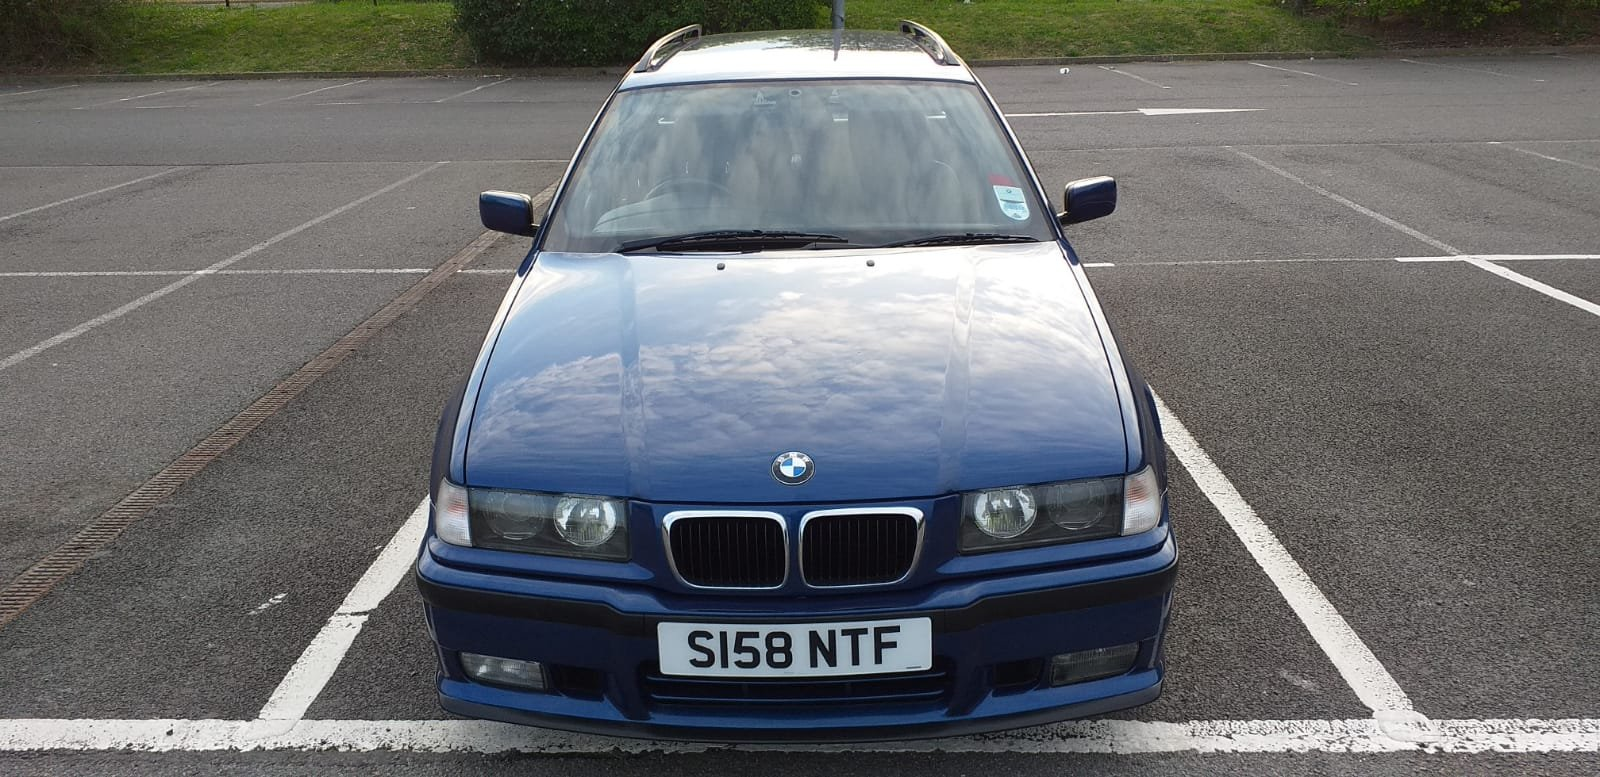 1999 BMW e36 Touring M Sport Avus Blue 73k For Sale (picture 1 of 6)